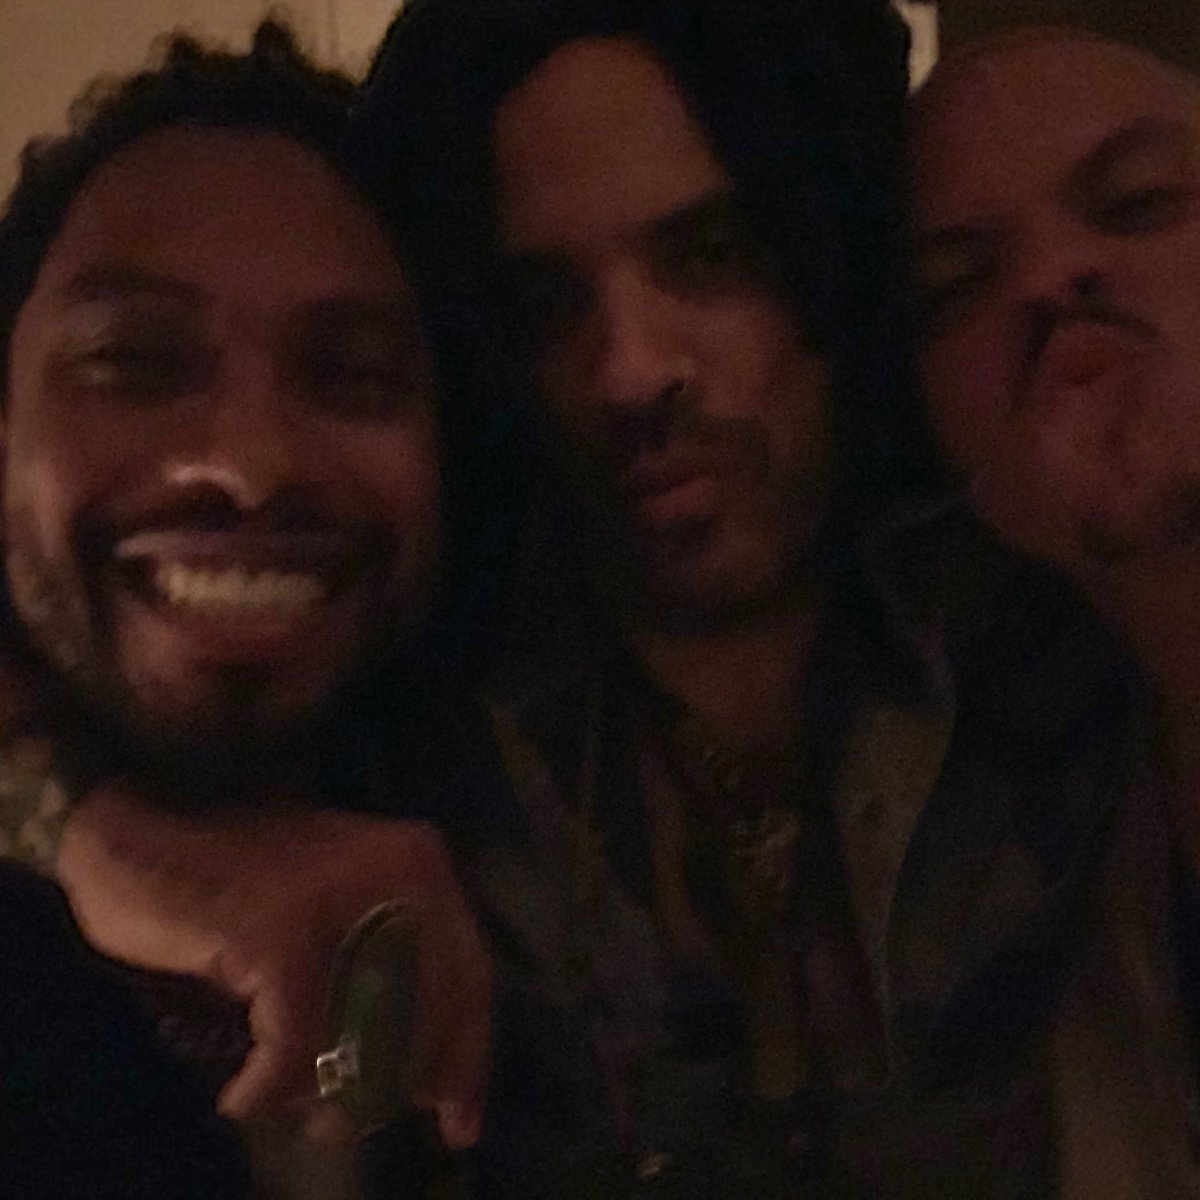 Last night was a blur @Miguel @realevanross https://t.co/1CtdXHd7qZ